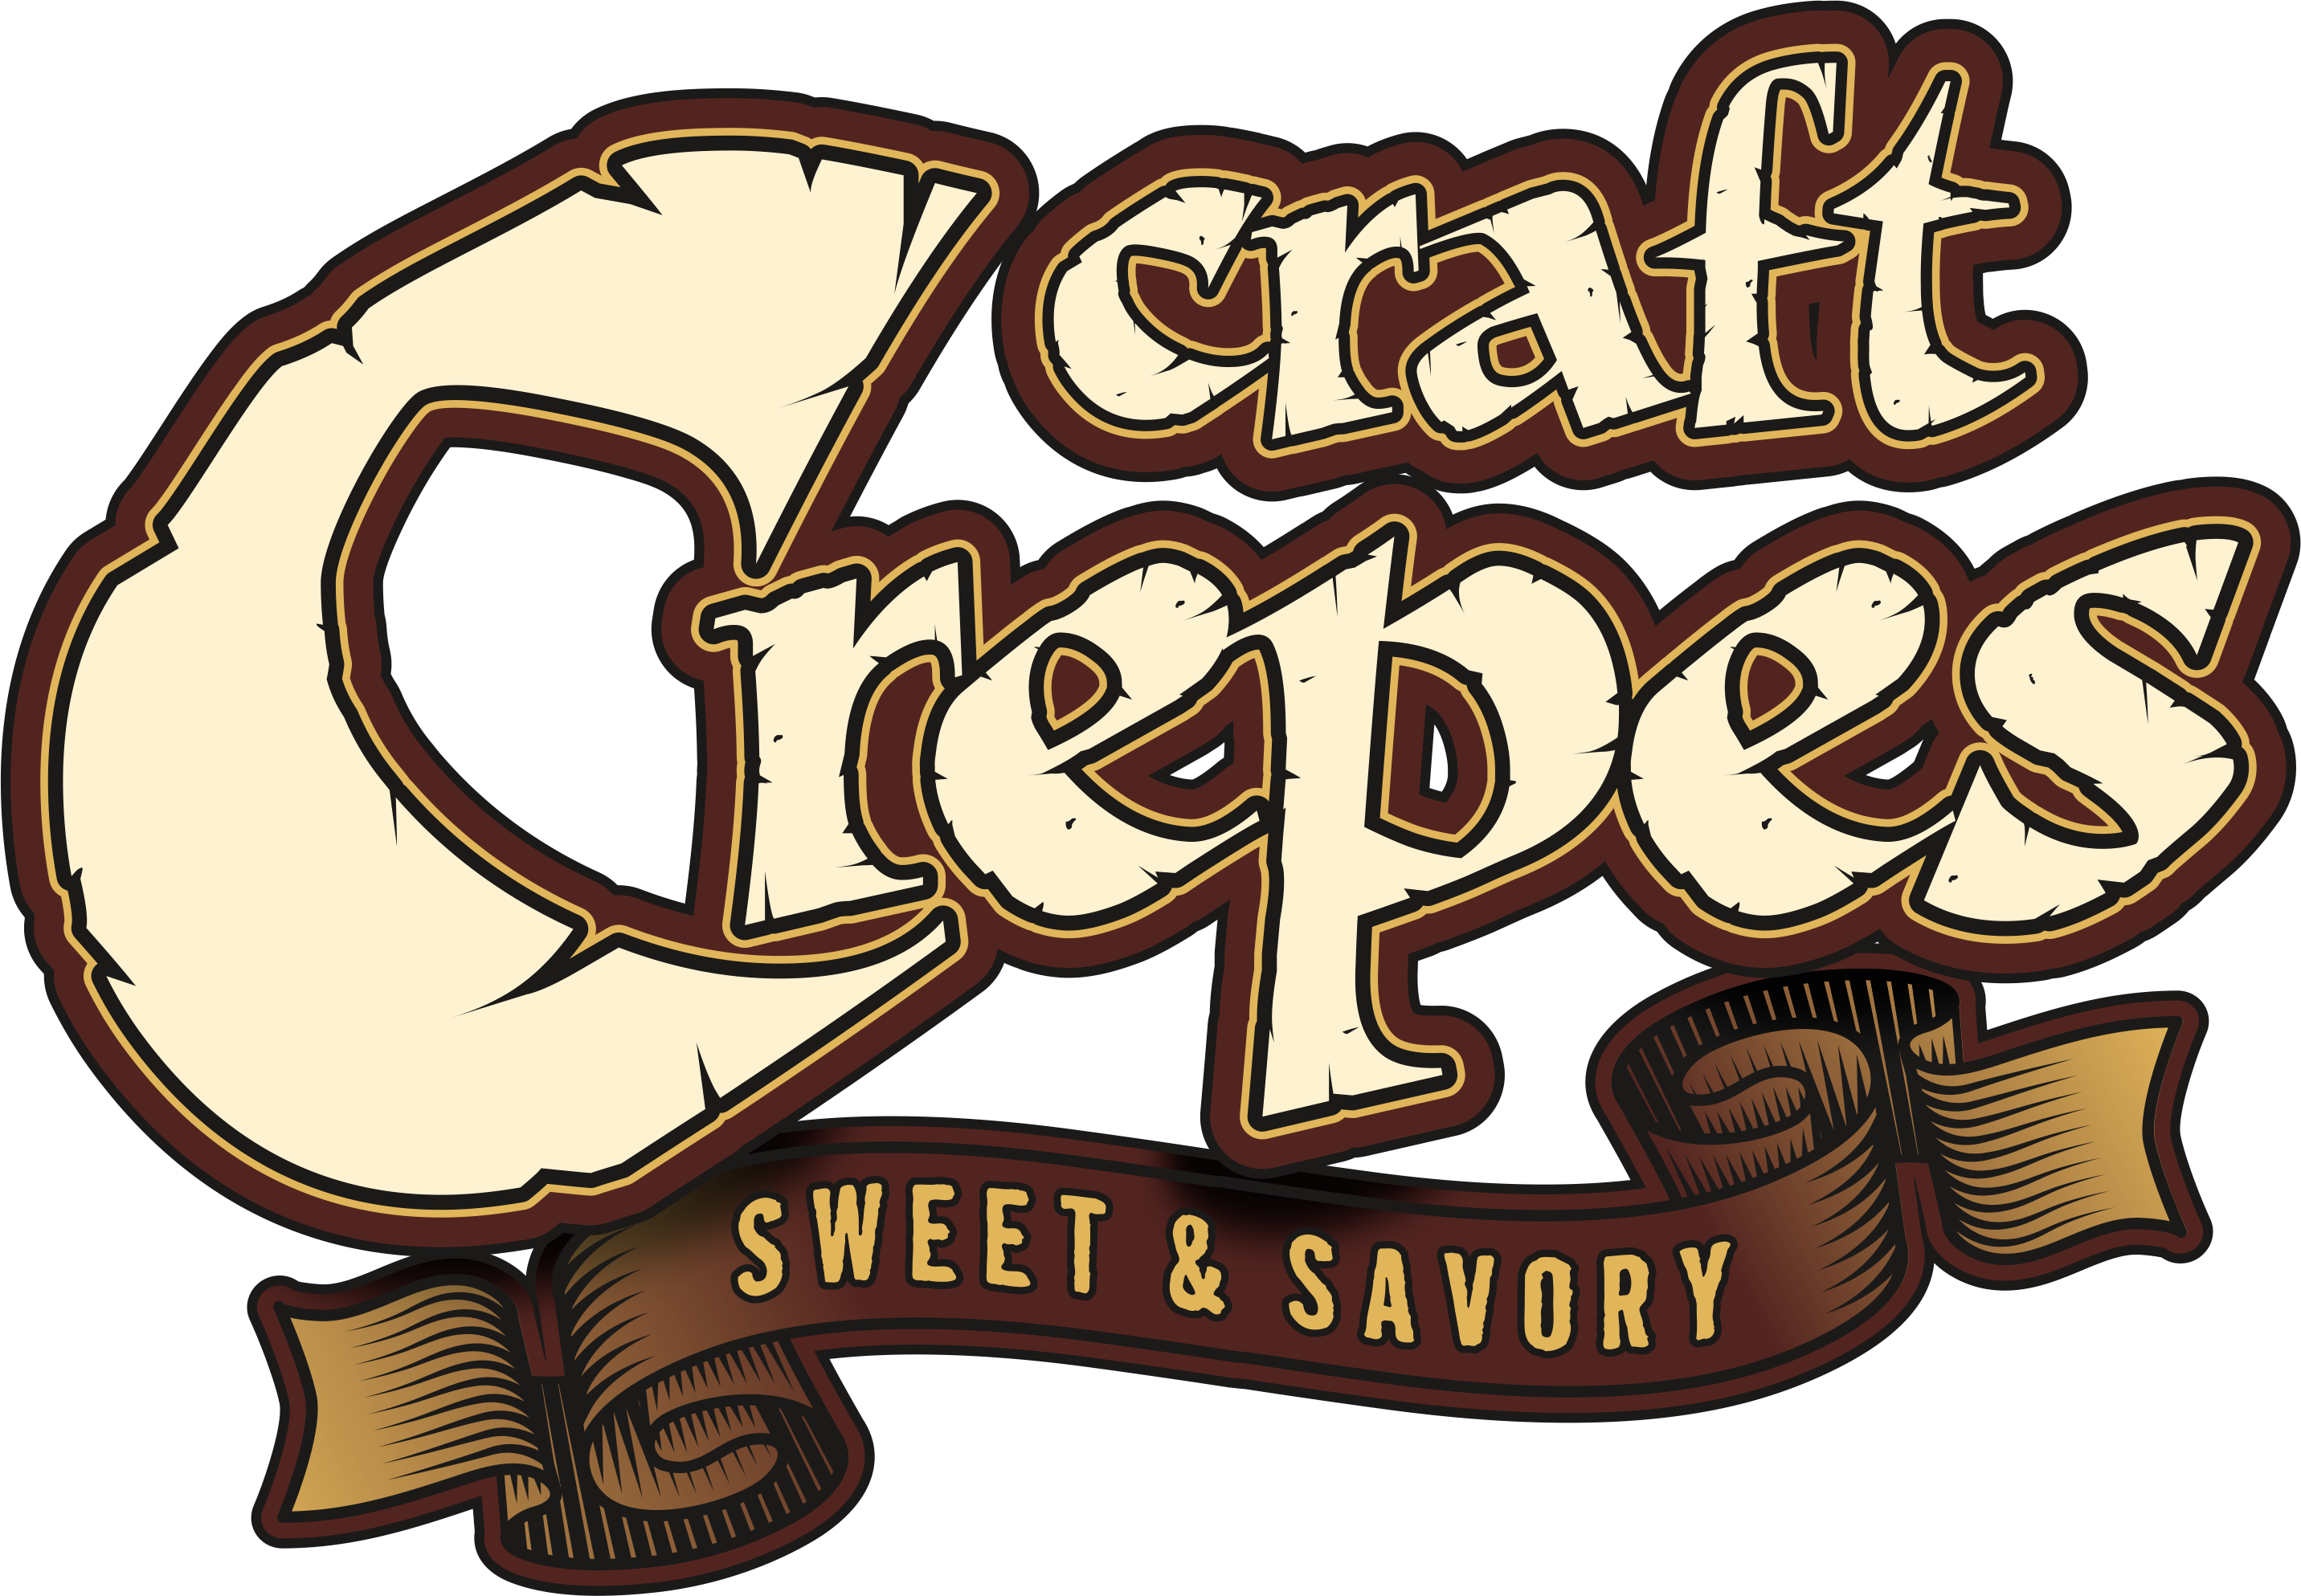 Craft Crepes - Sweet & Savory